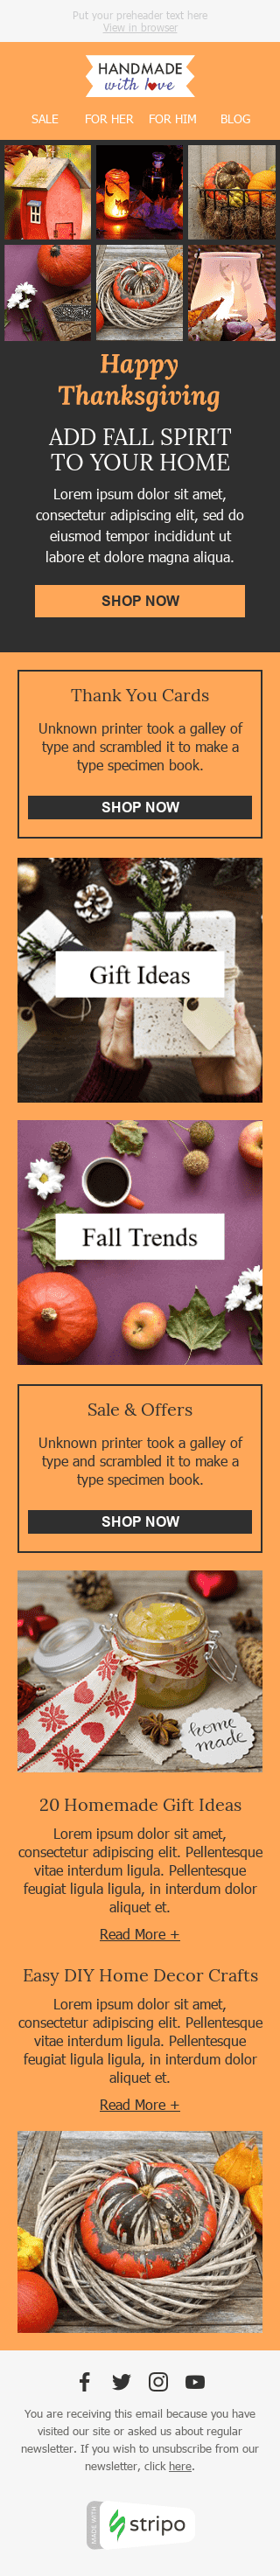 Stripo Books Presents Stationery Holiday newsletter Halloween Fall Spirit email web